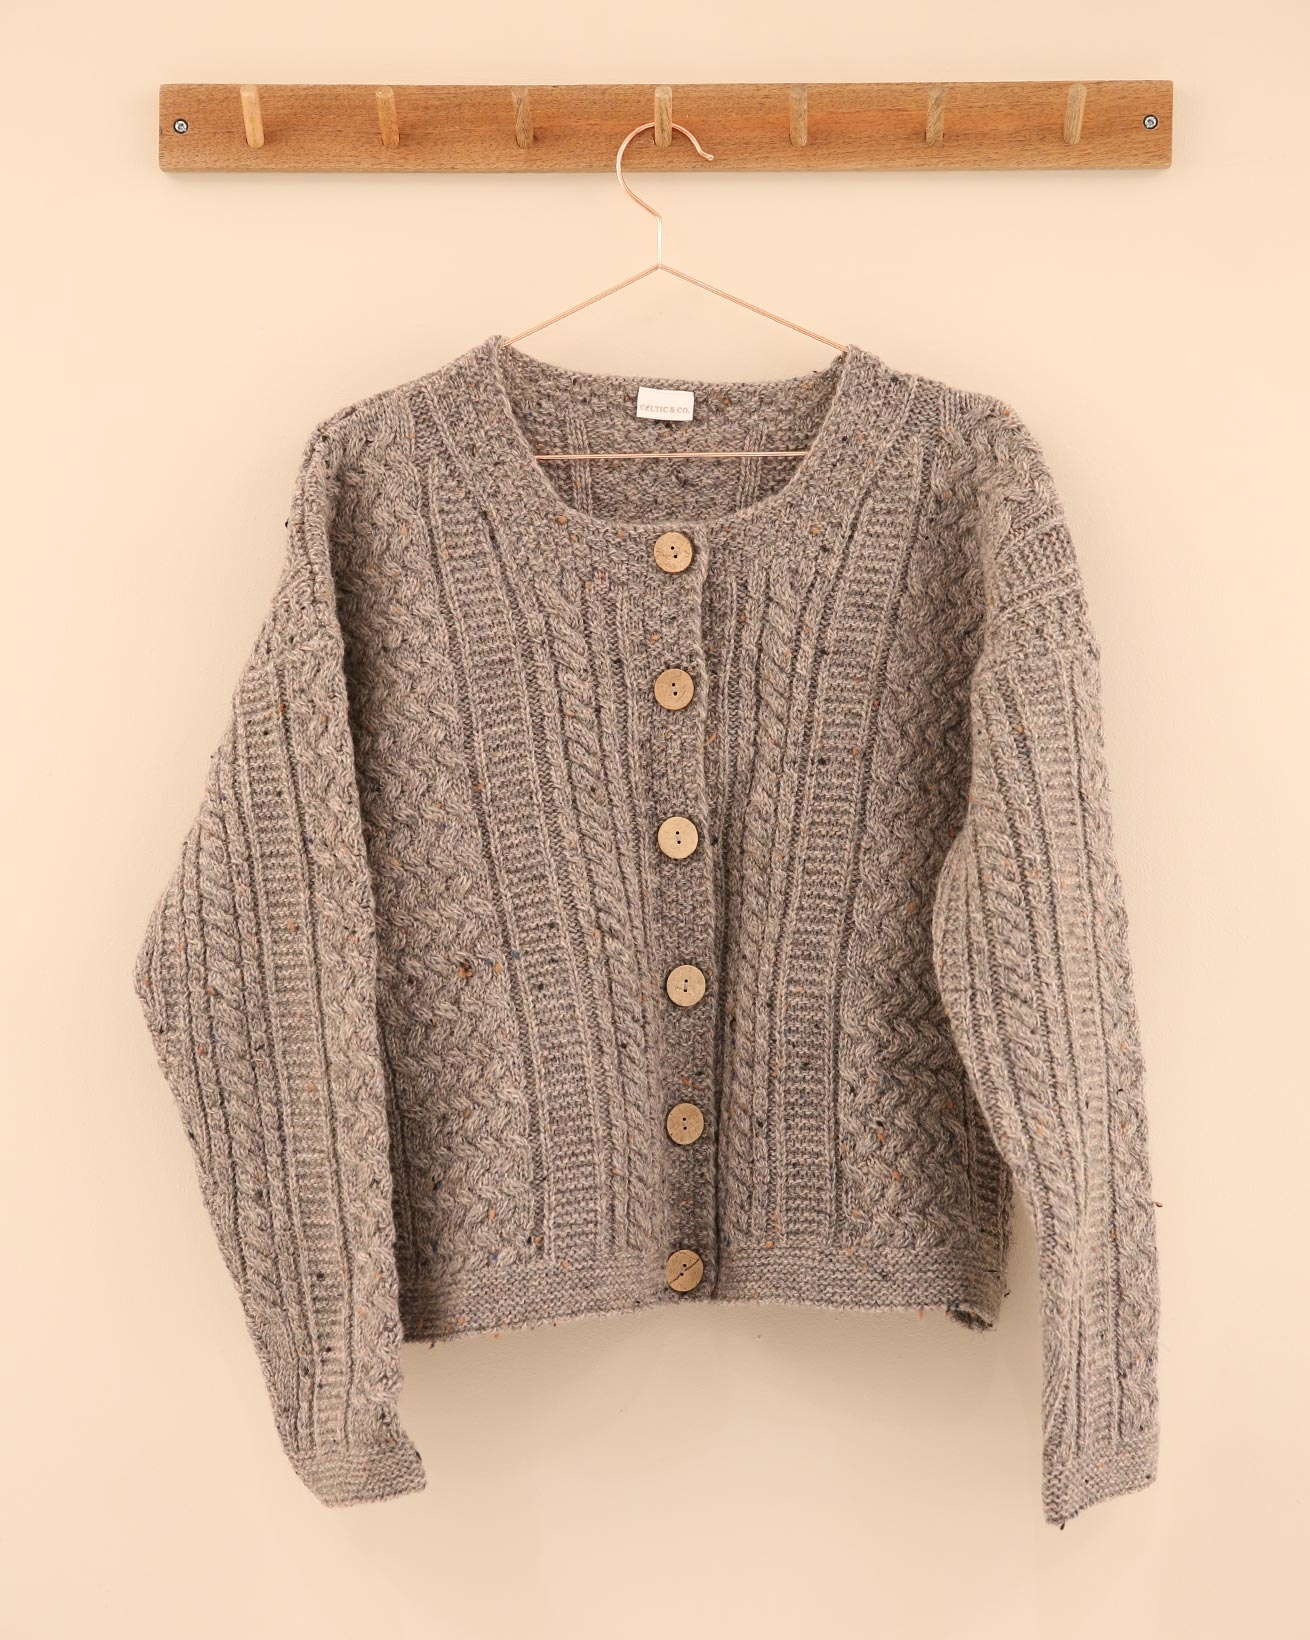 Cable Cardigan - Size Small - Flecked Grey - 2313